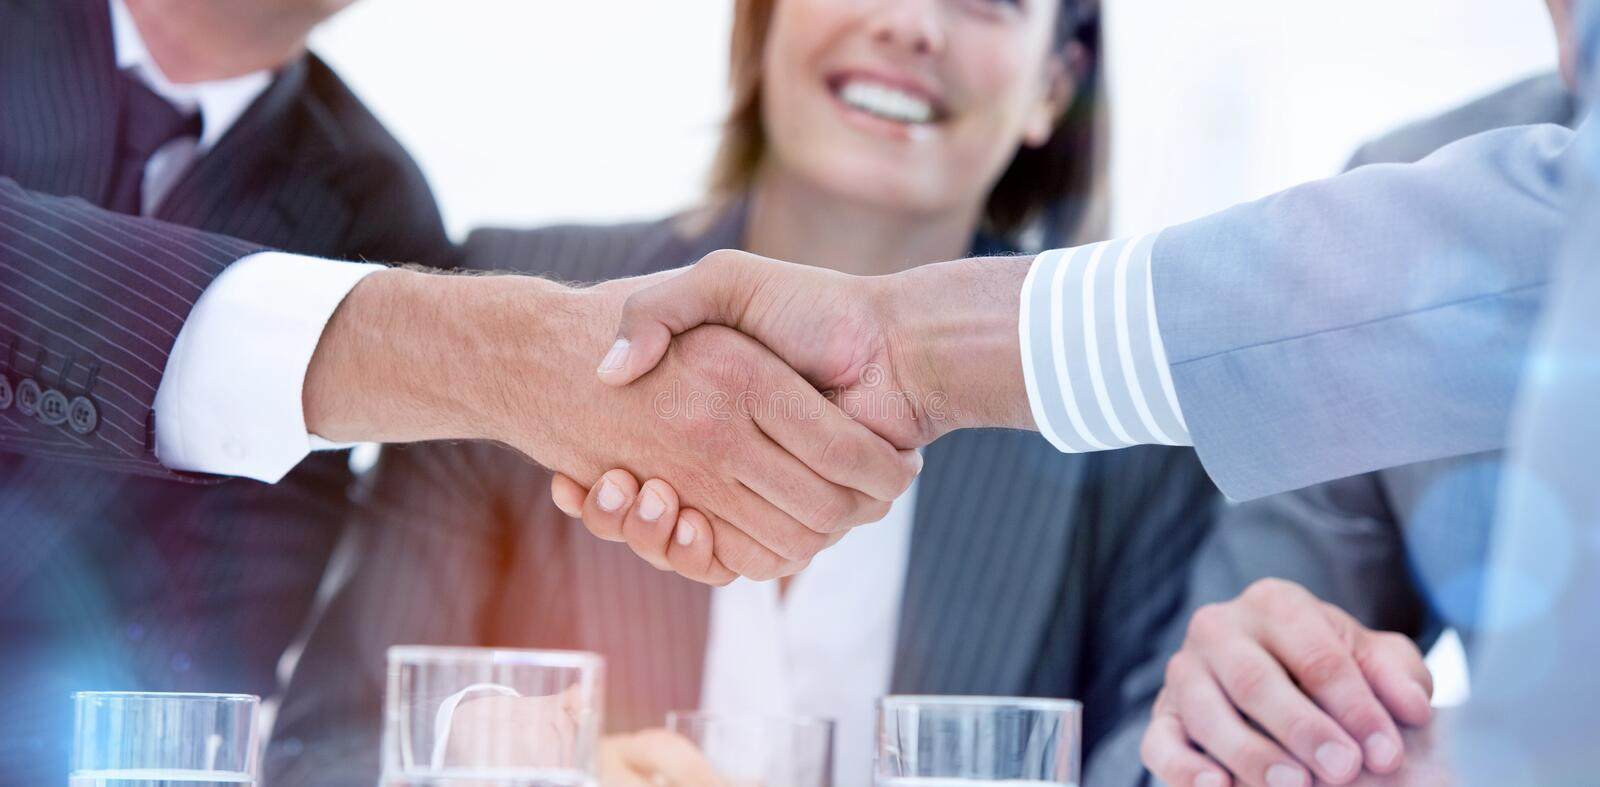 Smiling business people closing a deal. Against a white background royalty free stock image